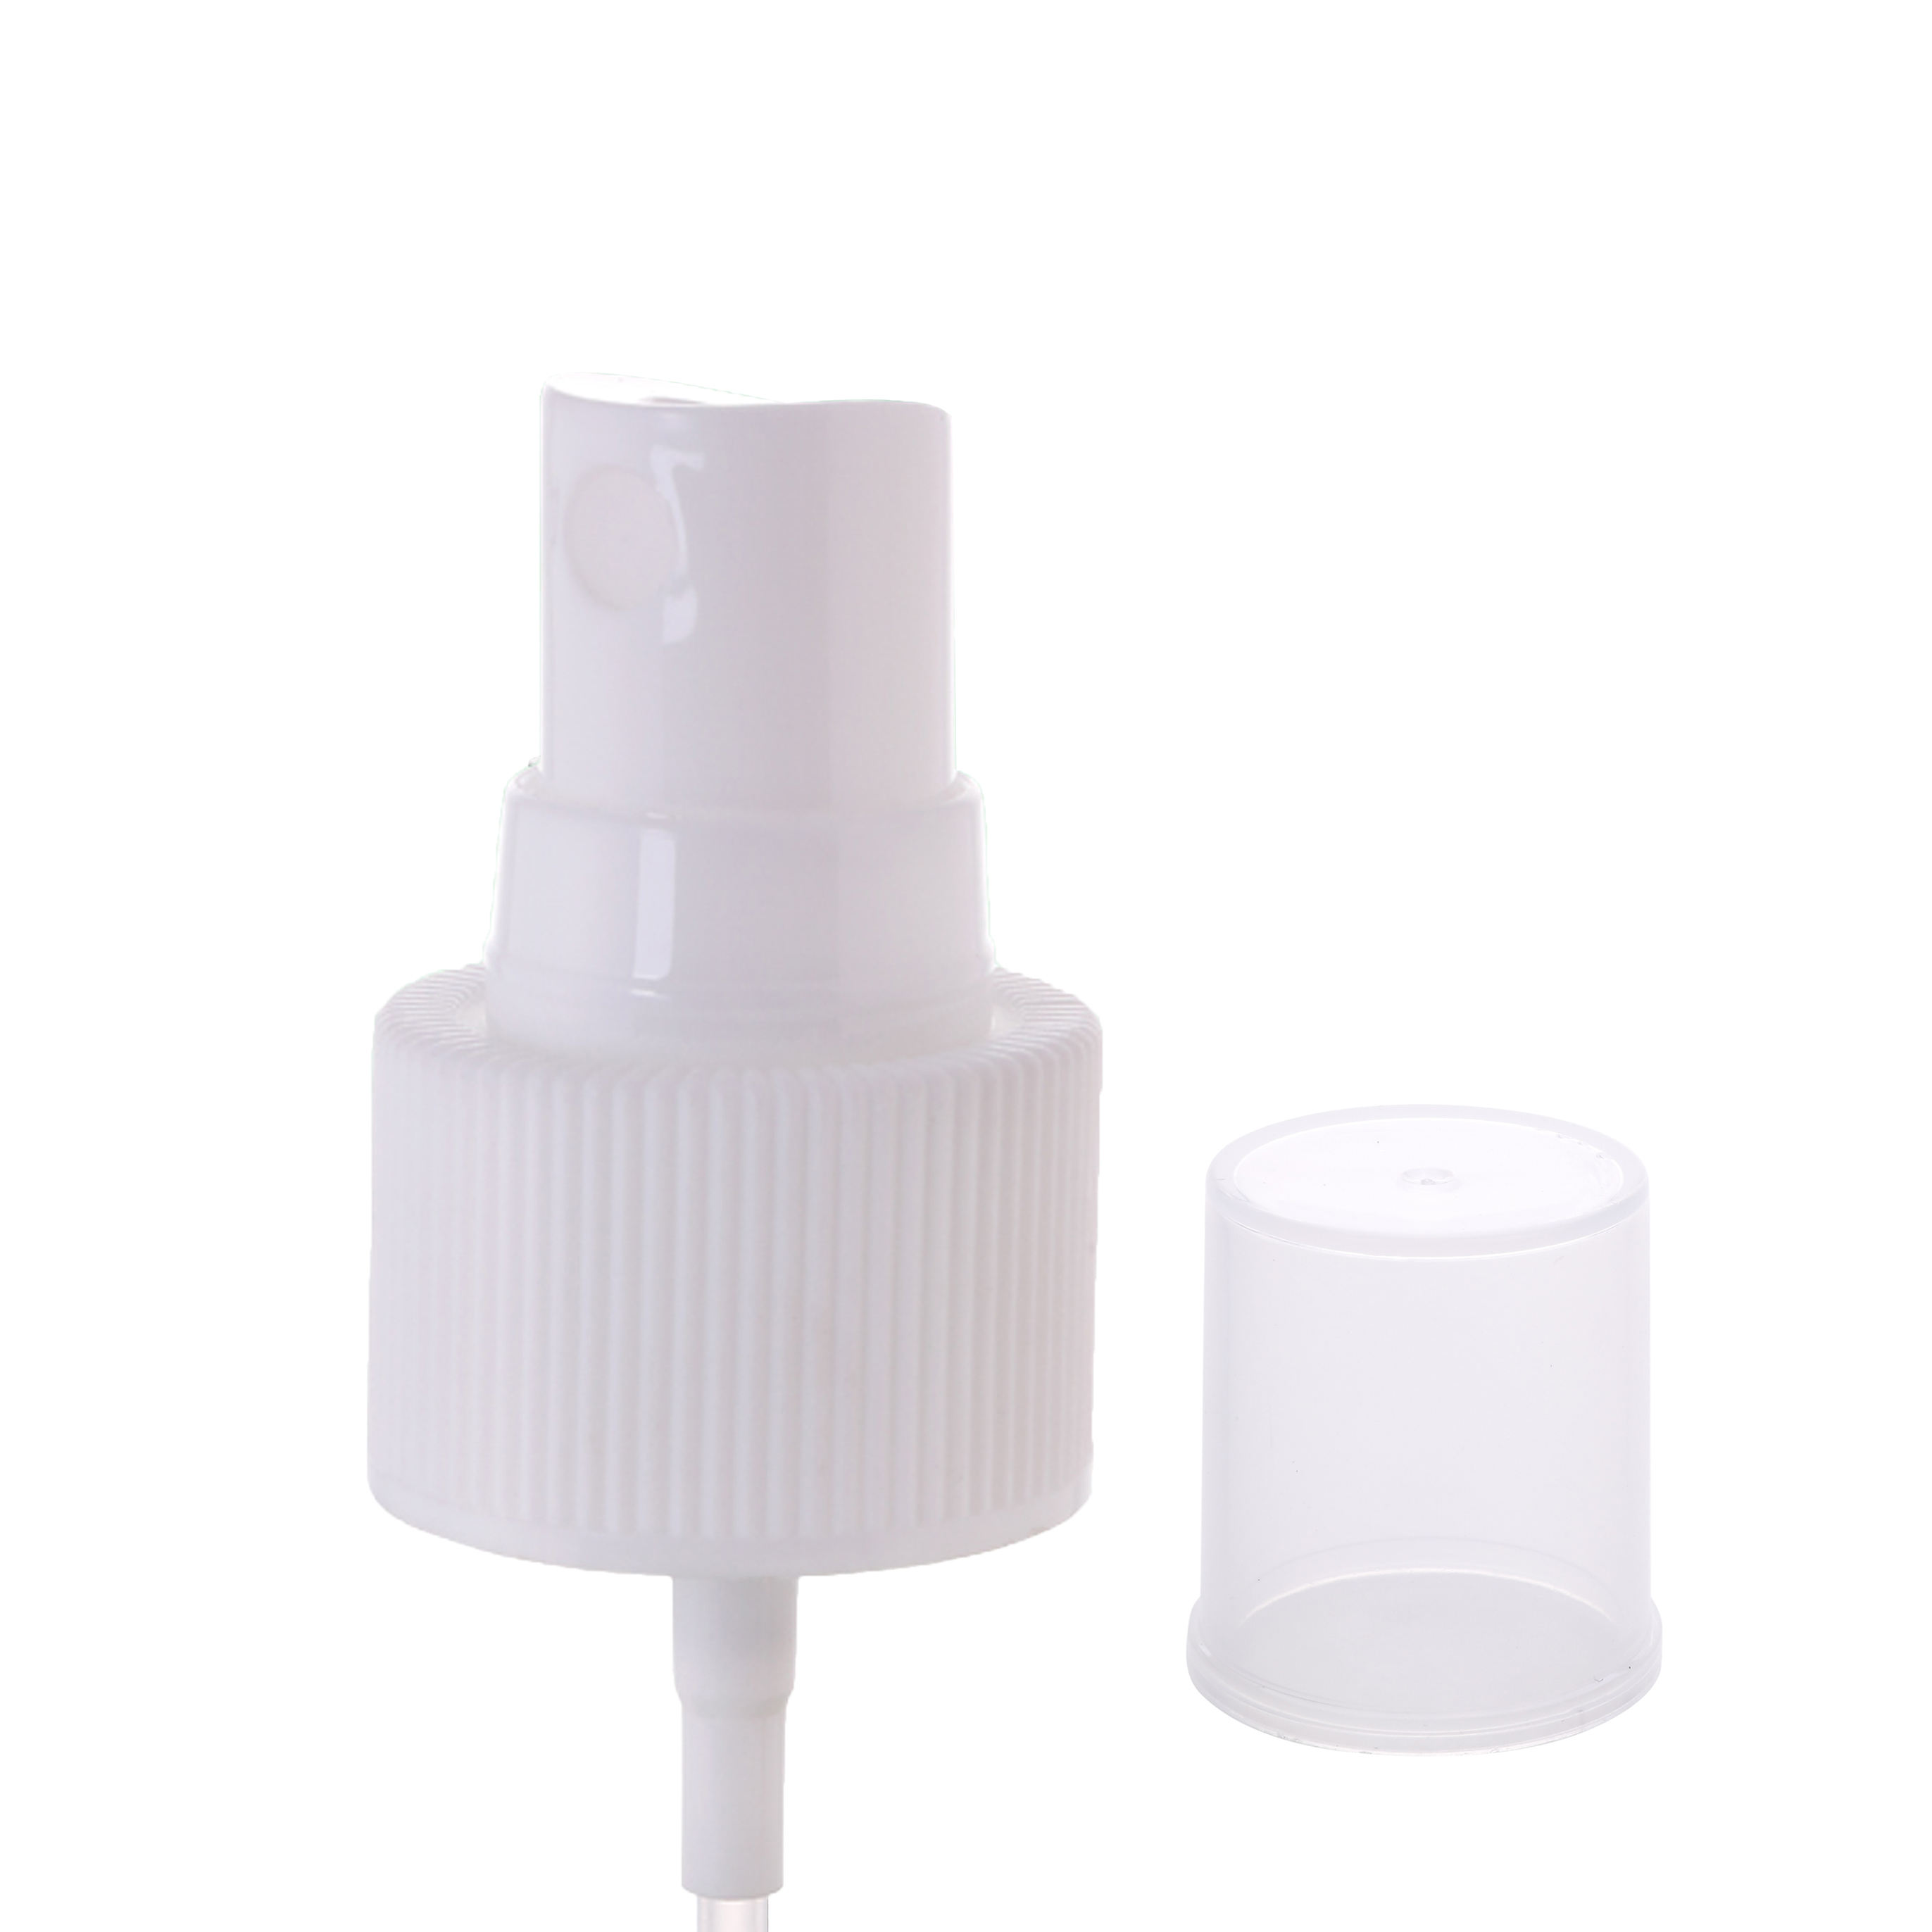 Essential oil mist sprayer perfume crimp sprayer pump for amber glass bottle caps